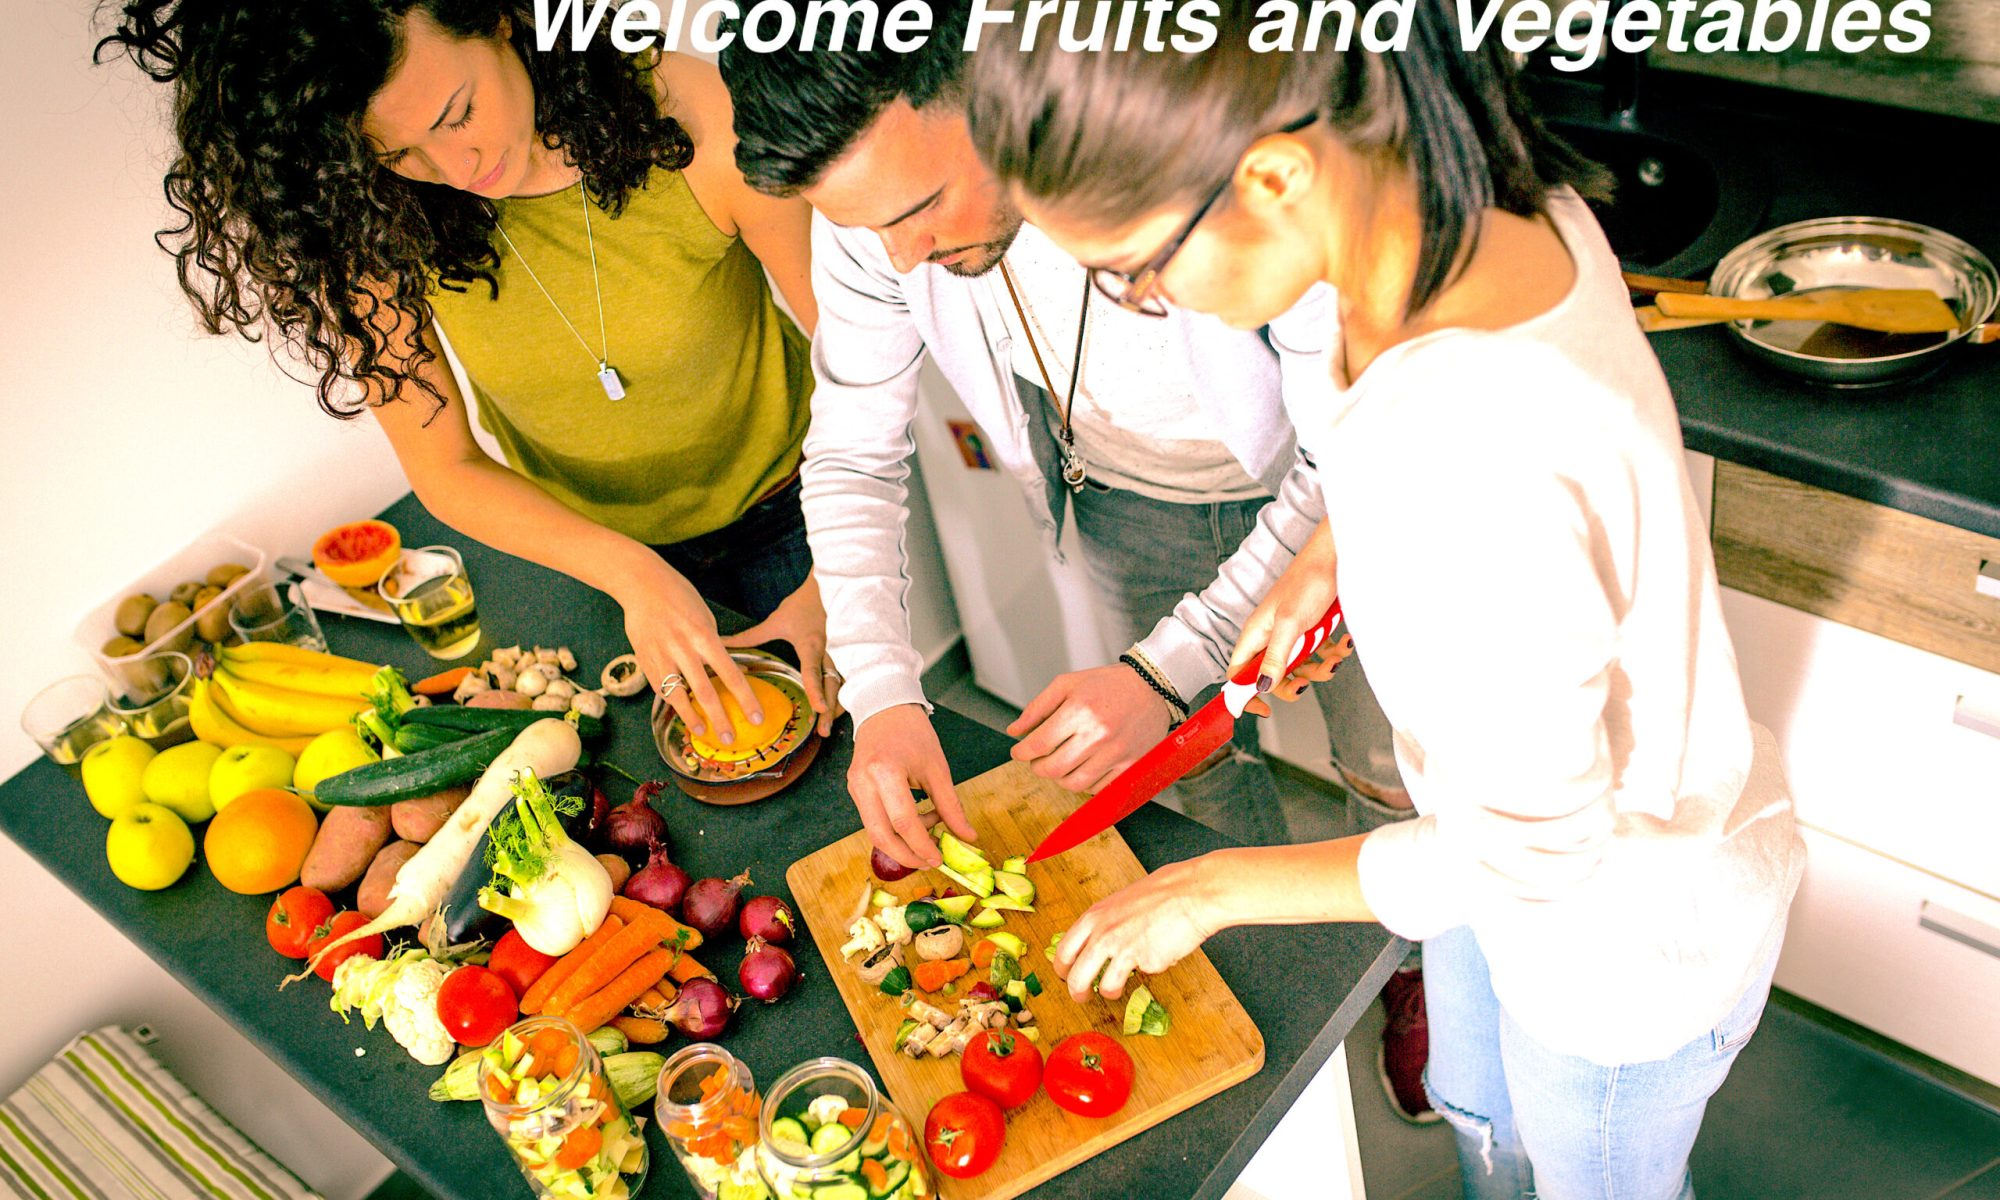 Welcome Fruit and Vegetables